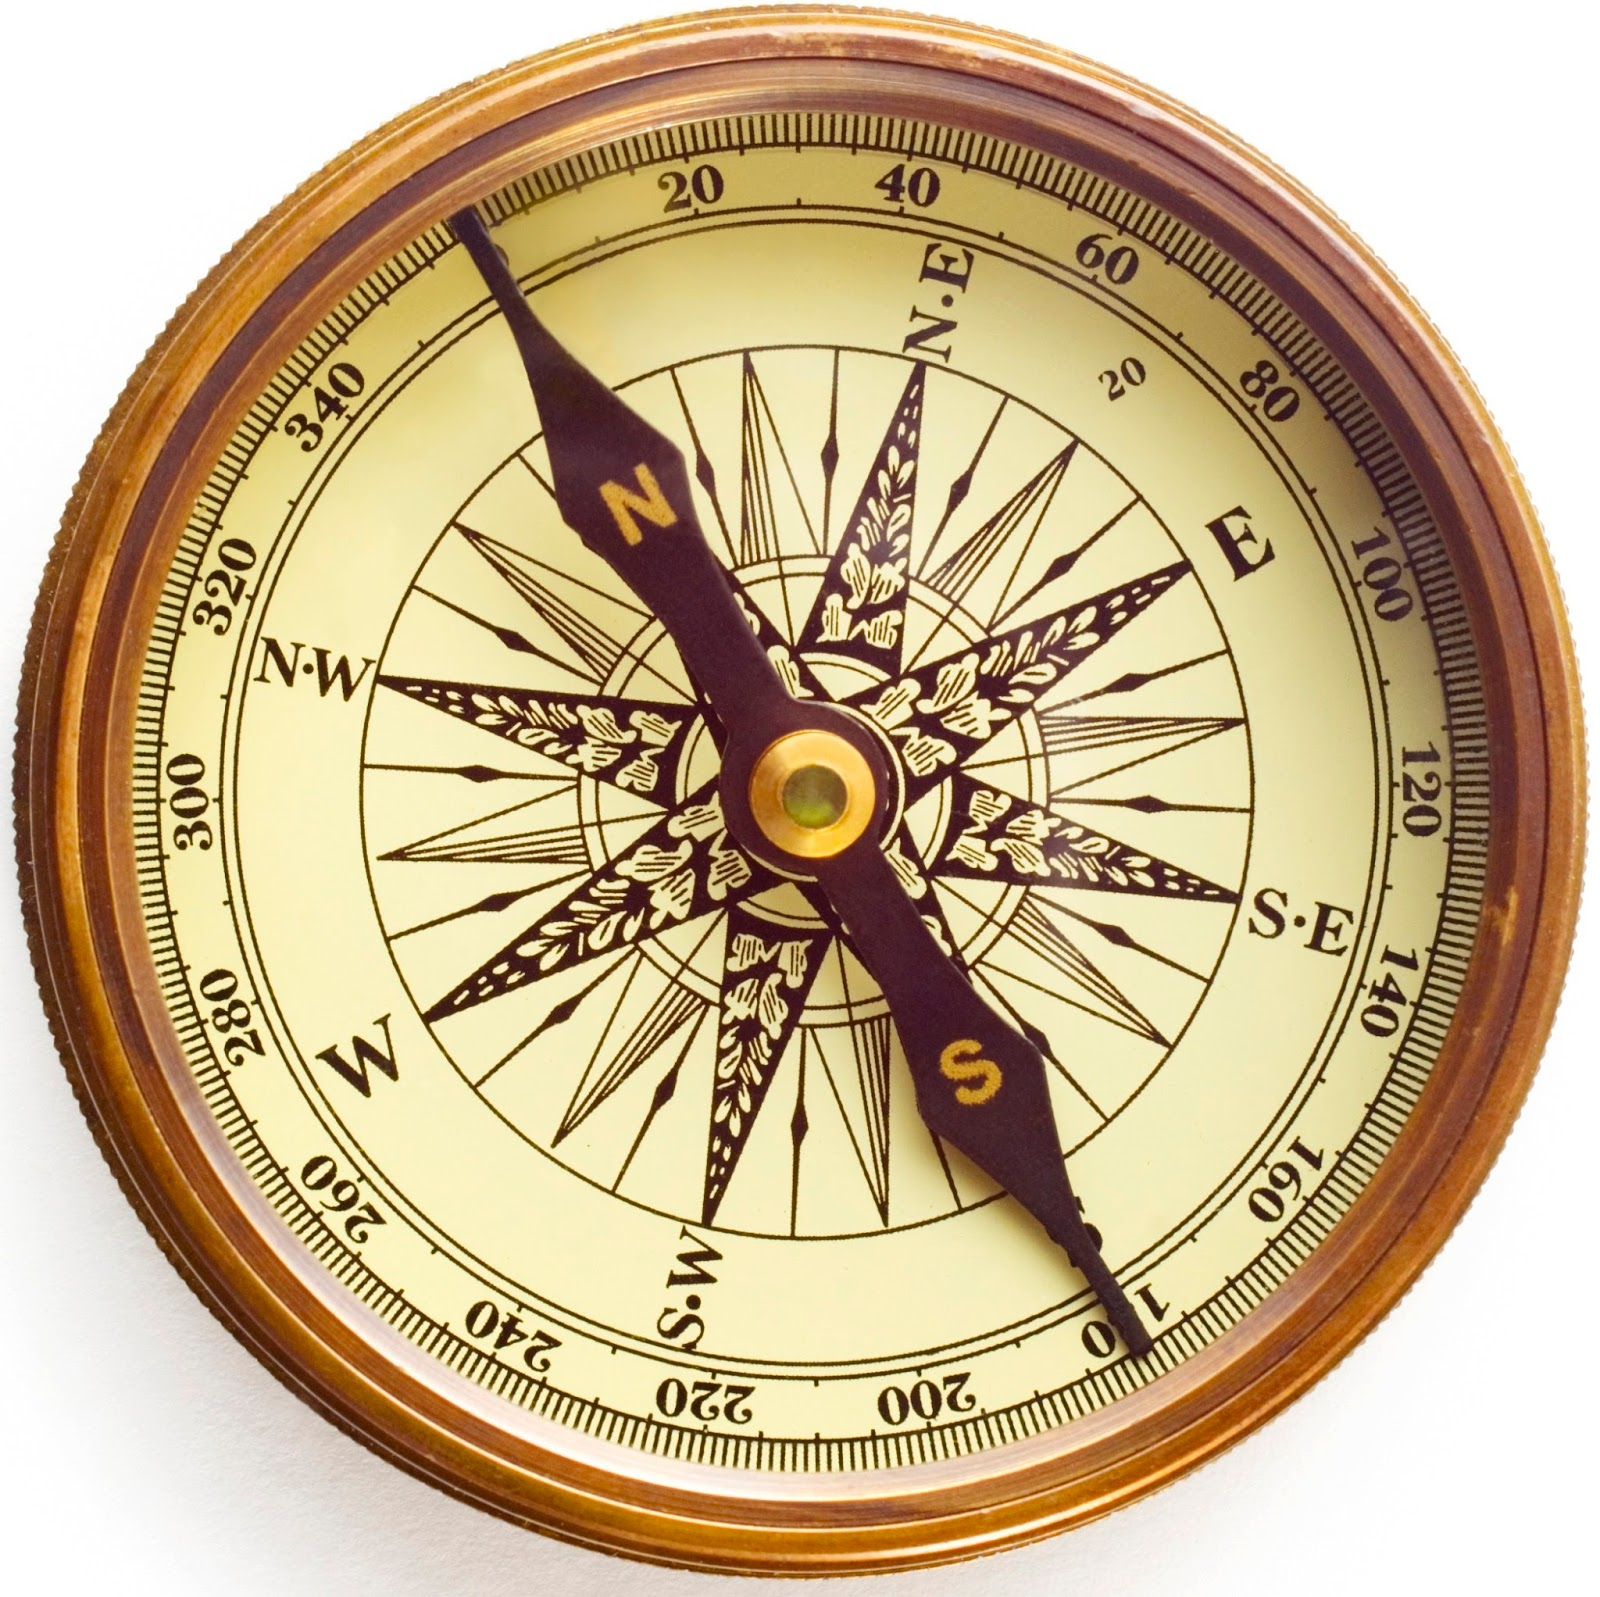 The Compass - Lessons - Tes Teach